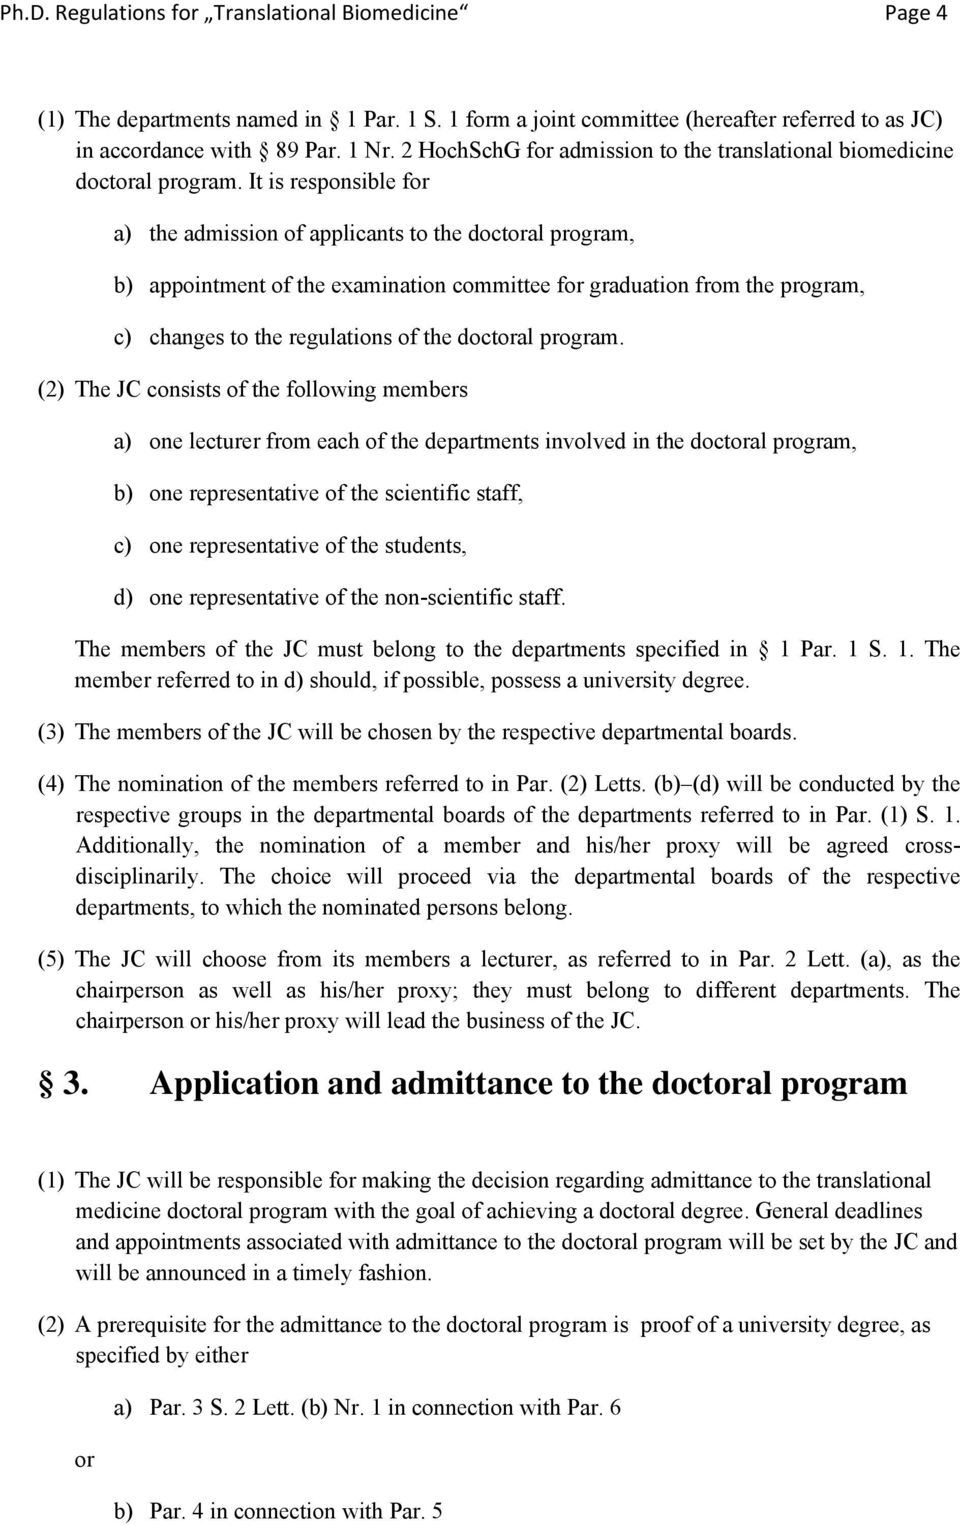 It is responsible for a) the admission of applicants to the doctoral program, b) appointment of the examination committee for graduation from the program, c) changes to the regulations of the